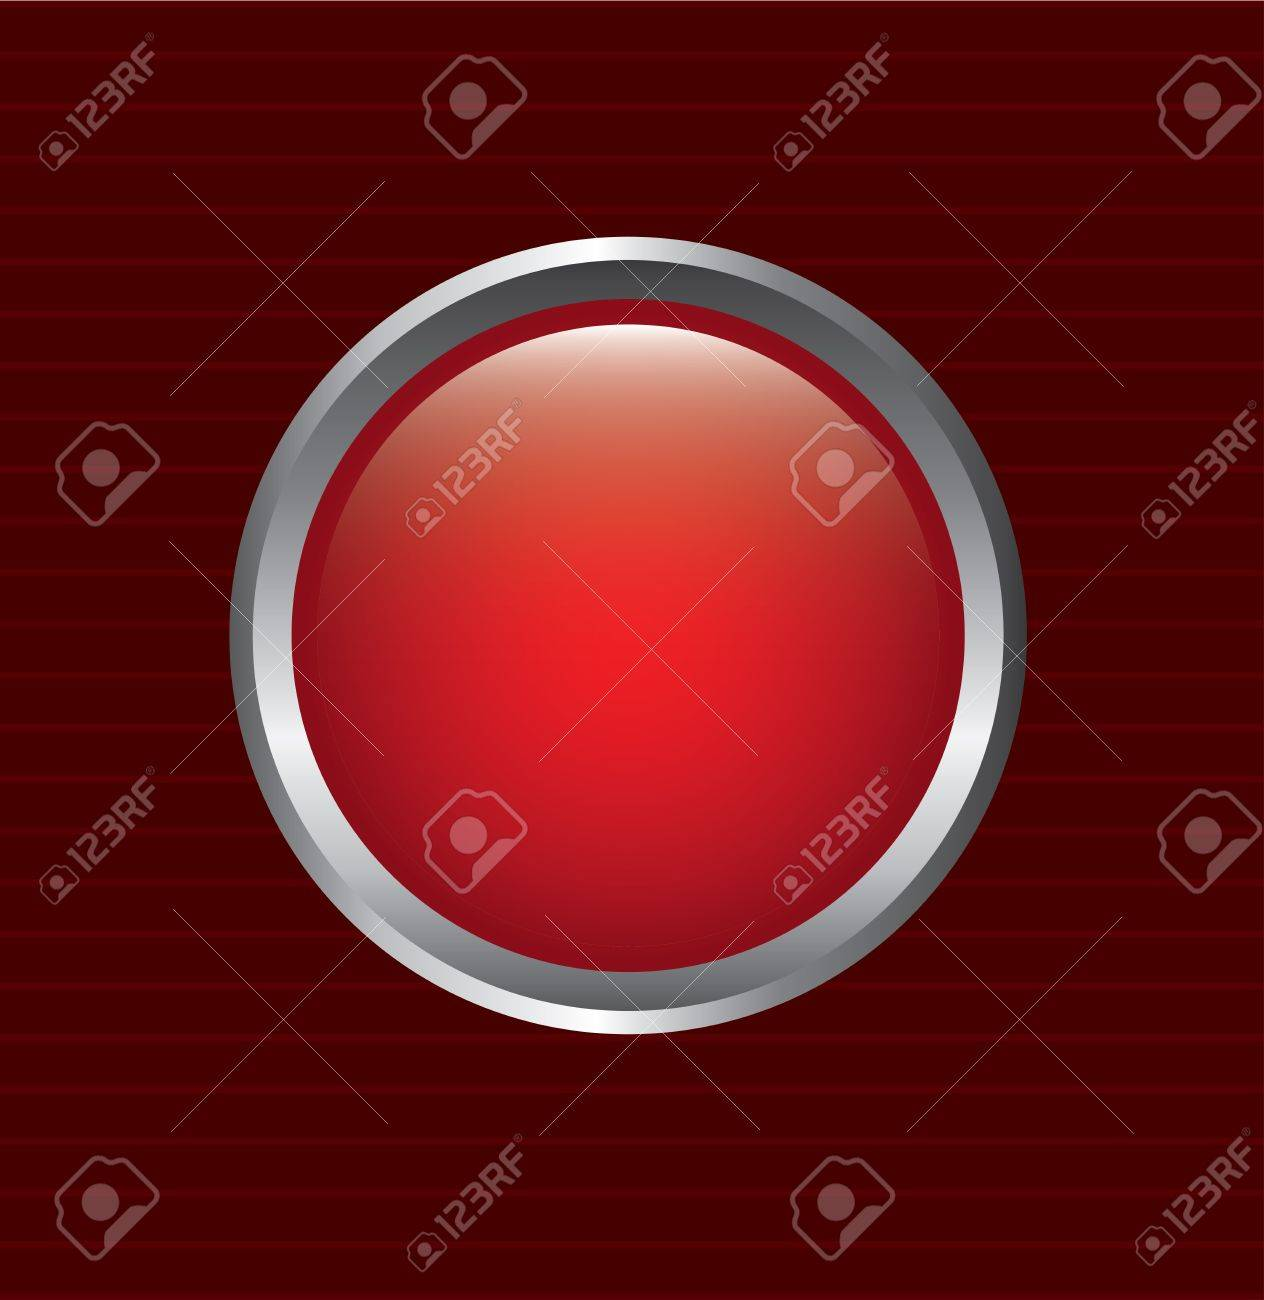 red button over lines background vector illustration Stock Vector - 20222058